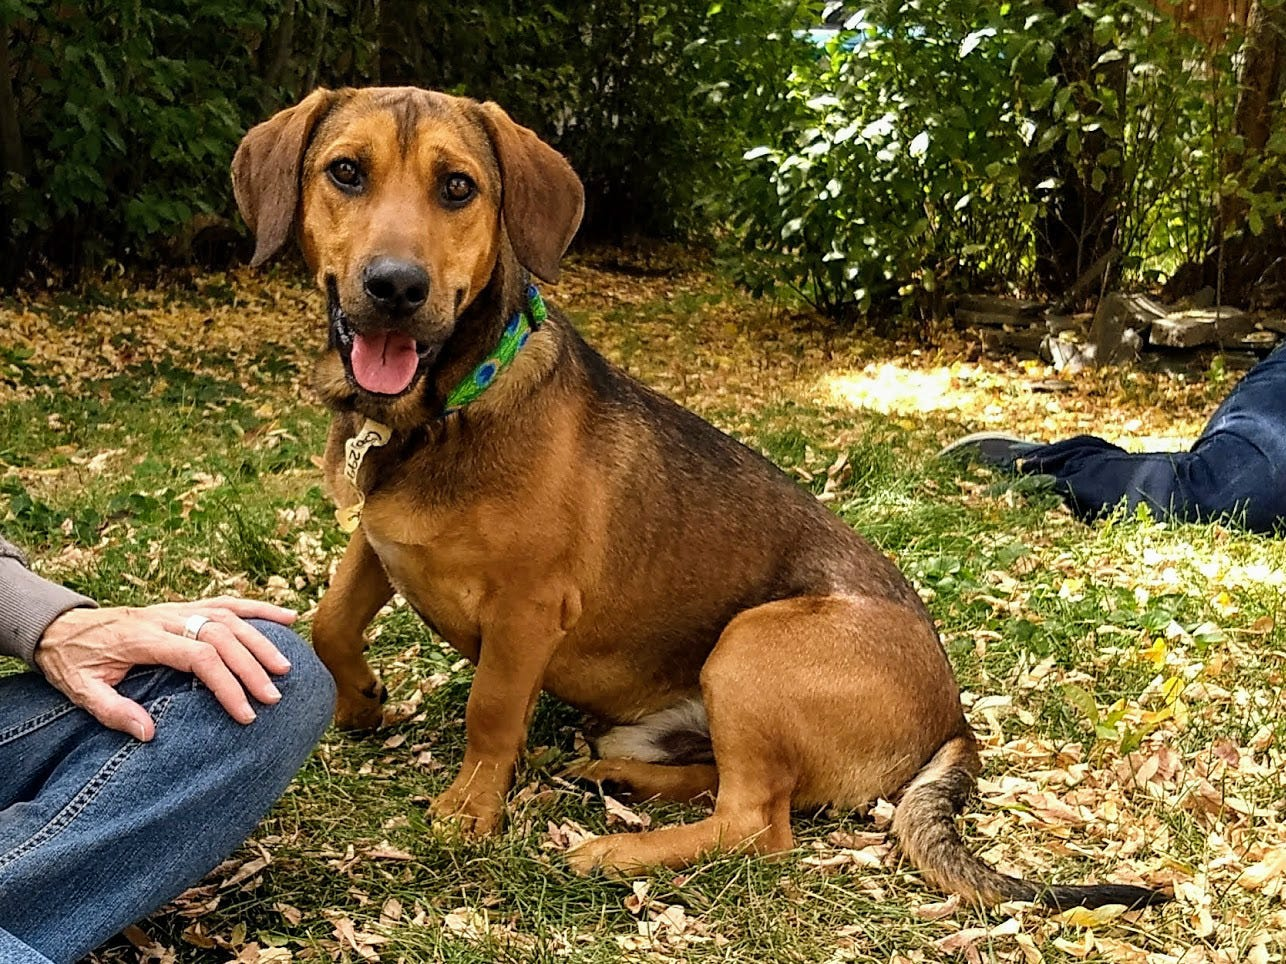 Max is a 1- to 2-year-old, 47-pound basset hound, Belgian shepherd and Malinois mix. He gets along with other dogs, cats and kids. Before rescue, he was left in an outdoor pen and is now afraid of being crated. He's microchipped, up to date on vaccinations and heartworm negative. Call SNIPPP at 336-6006. Go to www.snippp.org.